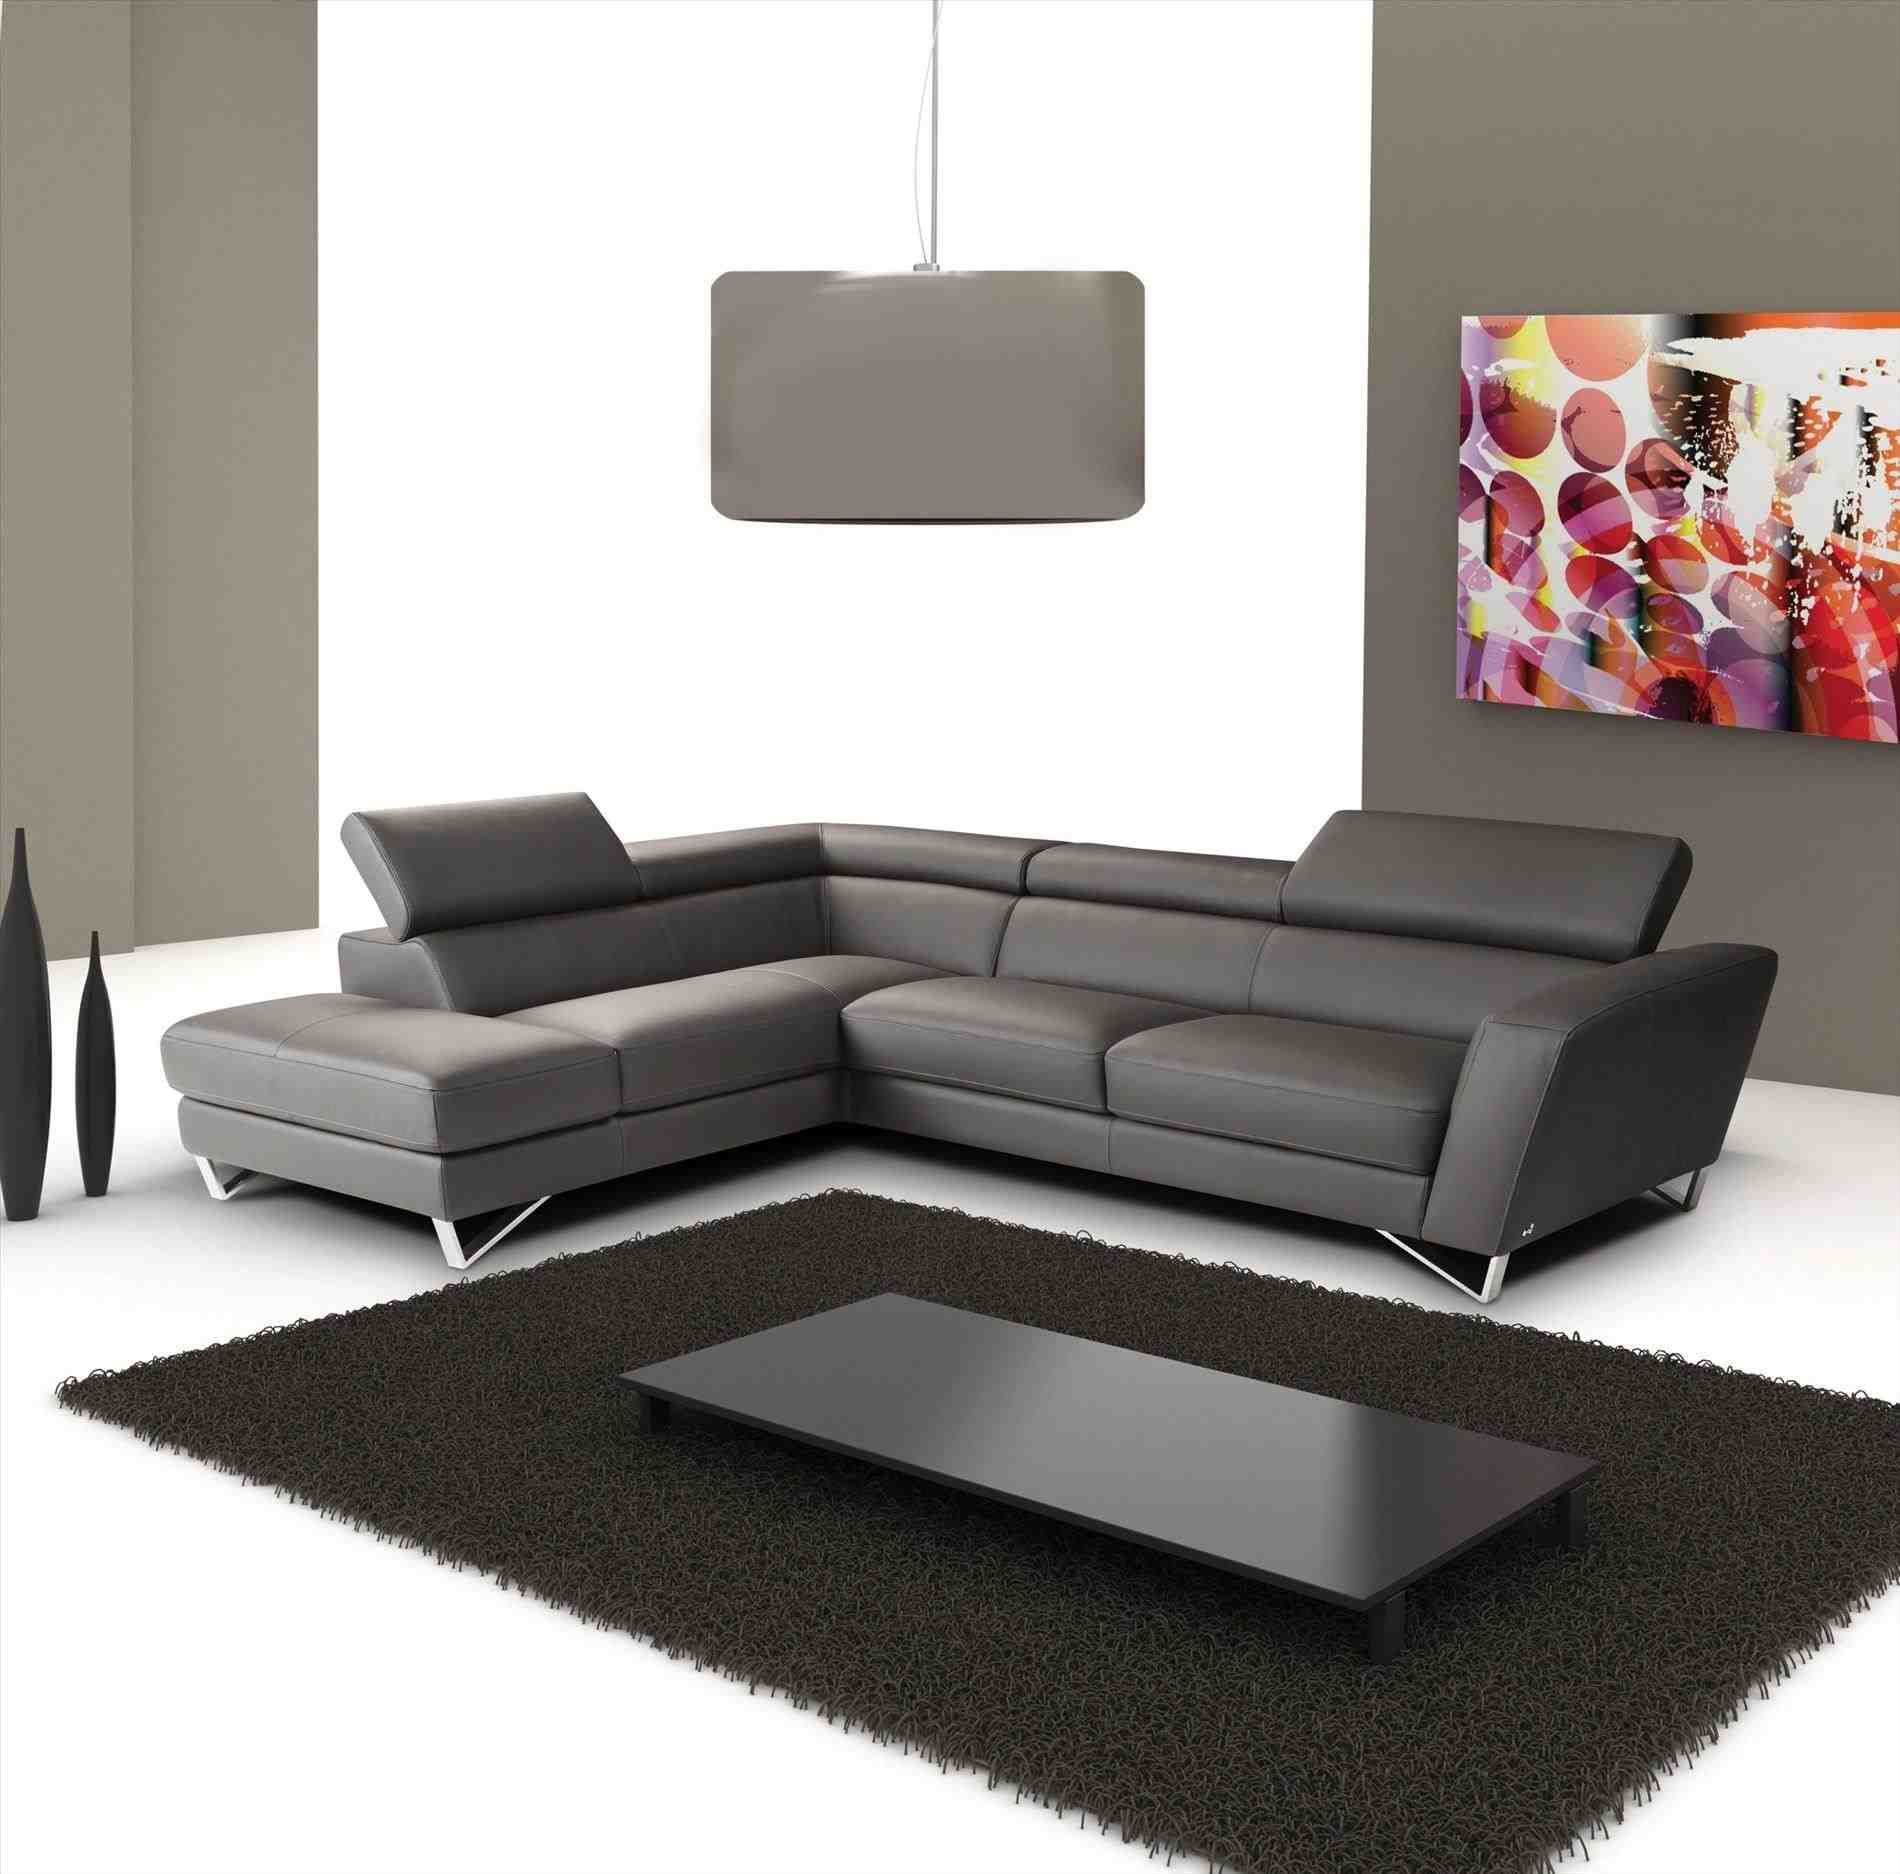 Cheap Modern Furniture Cheap Modern Furniture Johannesburg Full Size Of Dining Room